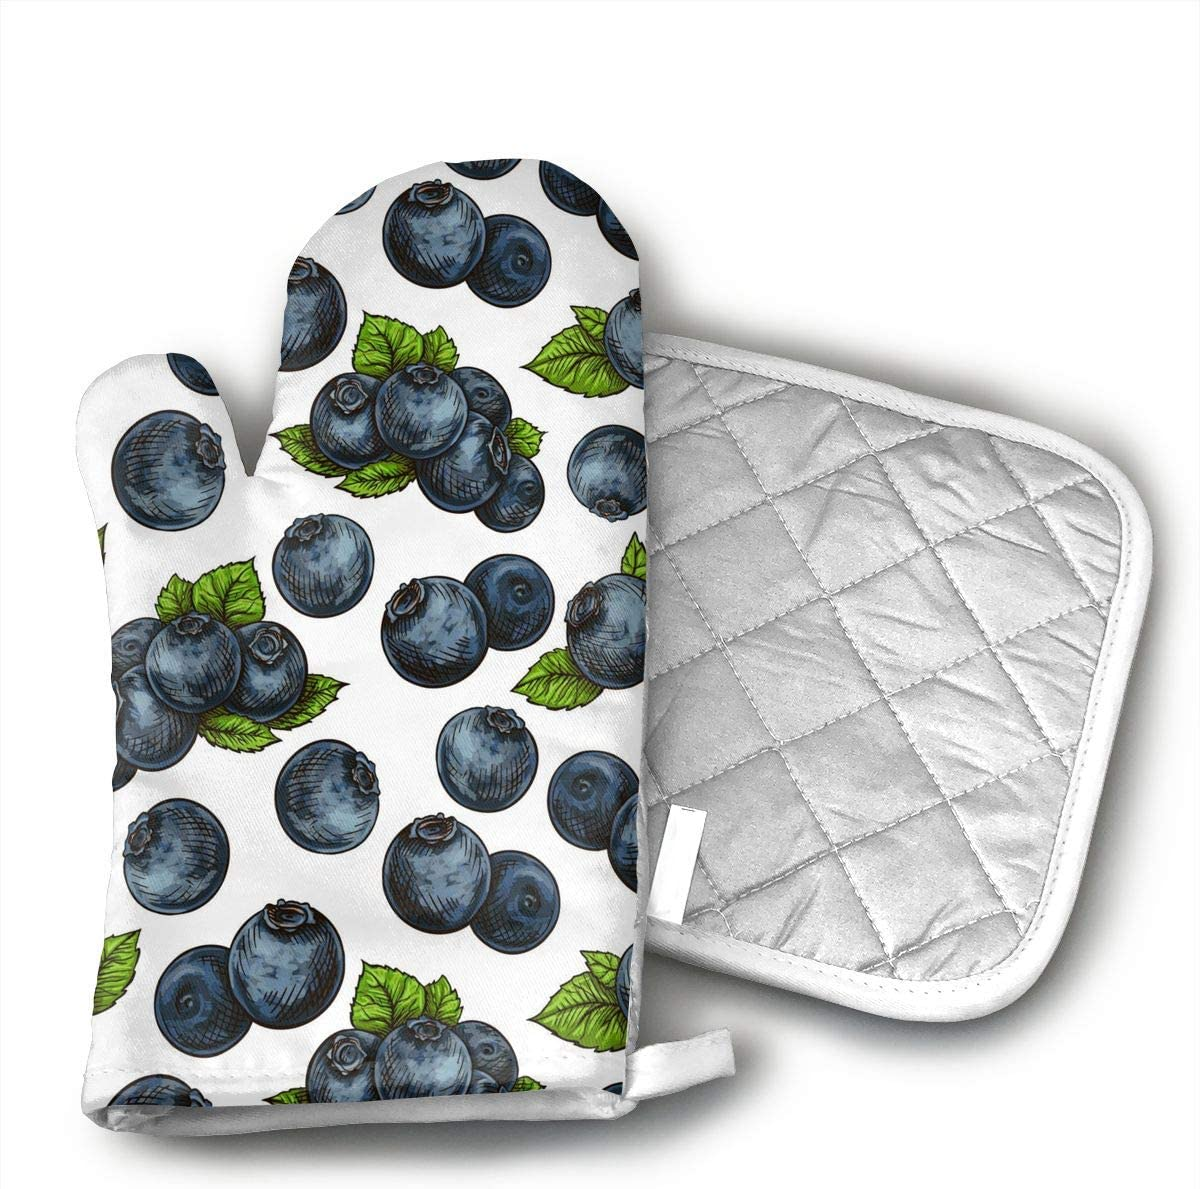 dtyGHSP Blueberry Pattern Oven Mitts with Quilted Cotton Lining - Professional Heat Resistant Potholder Kitchen Gloves